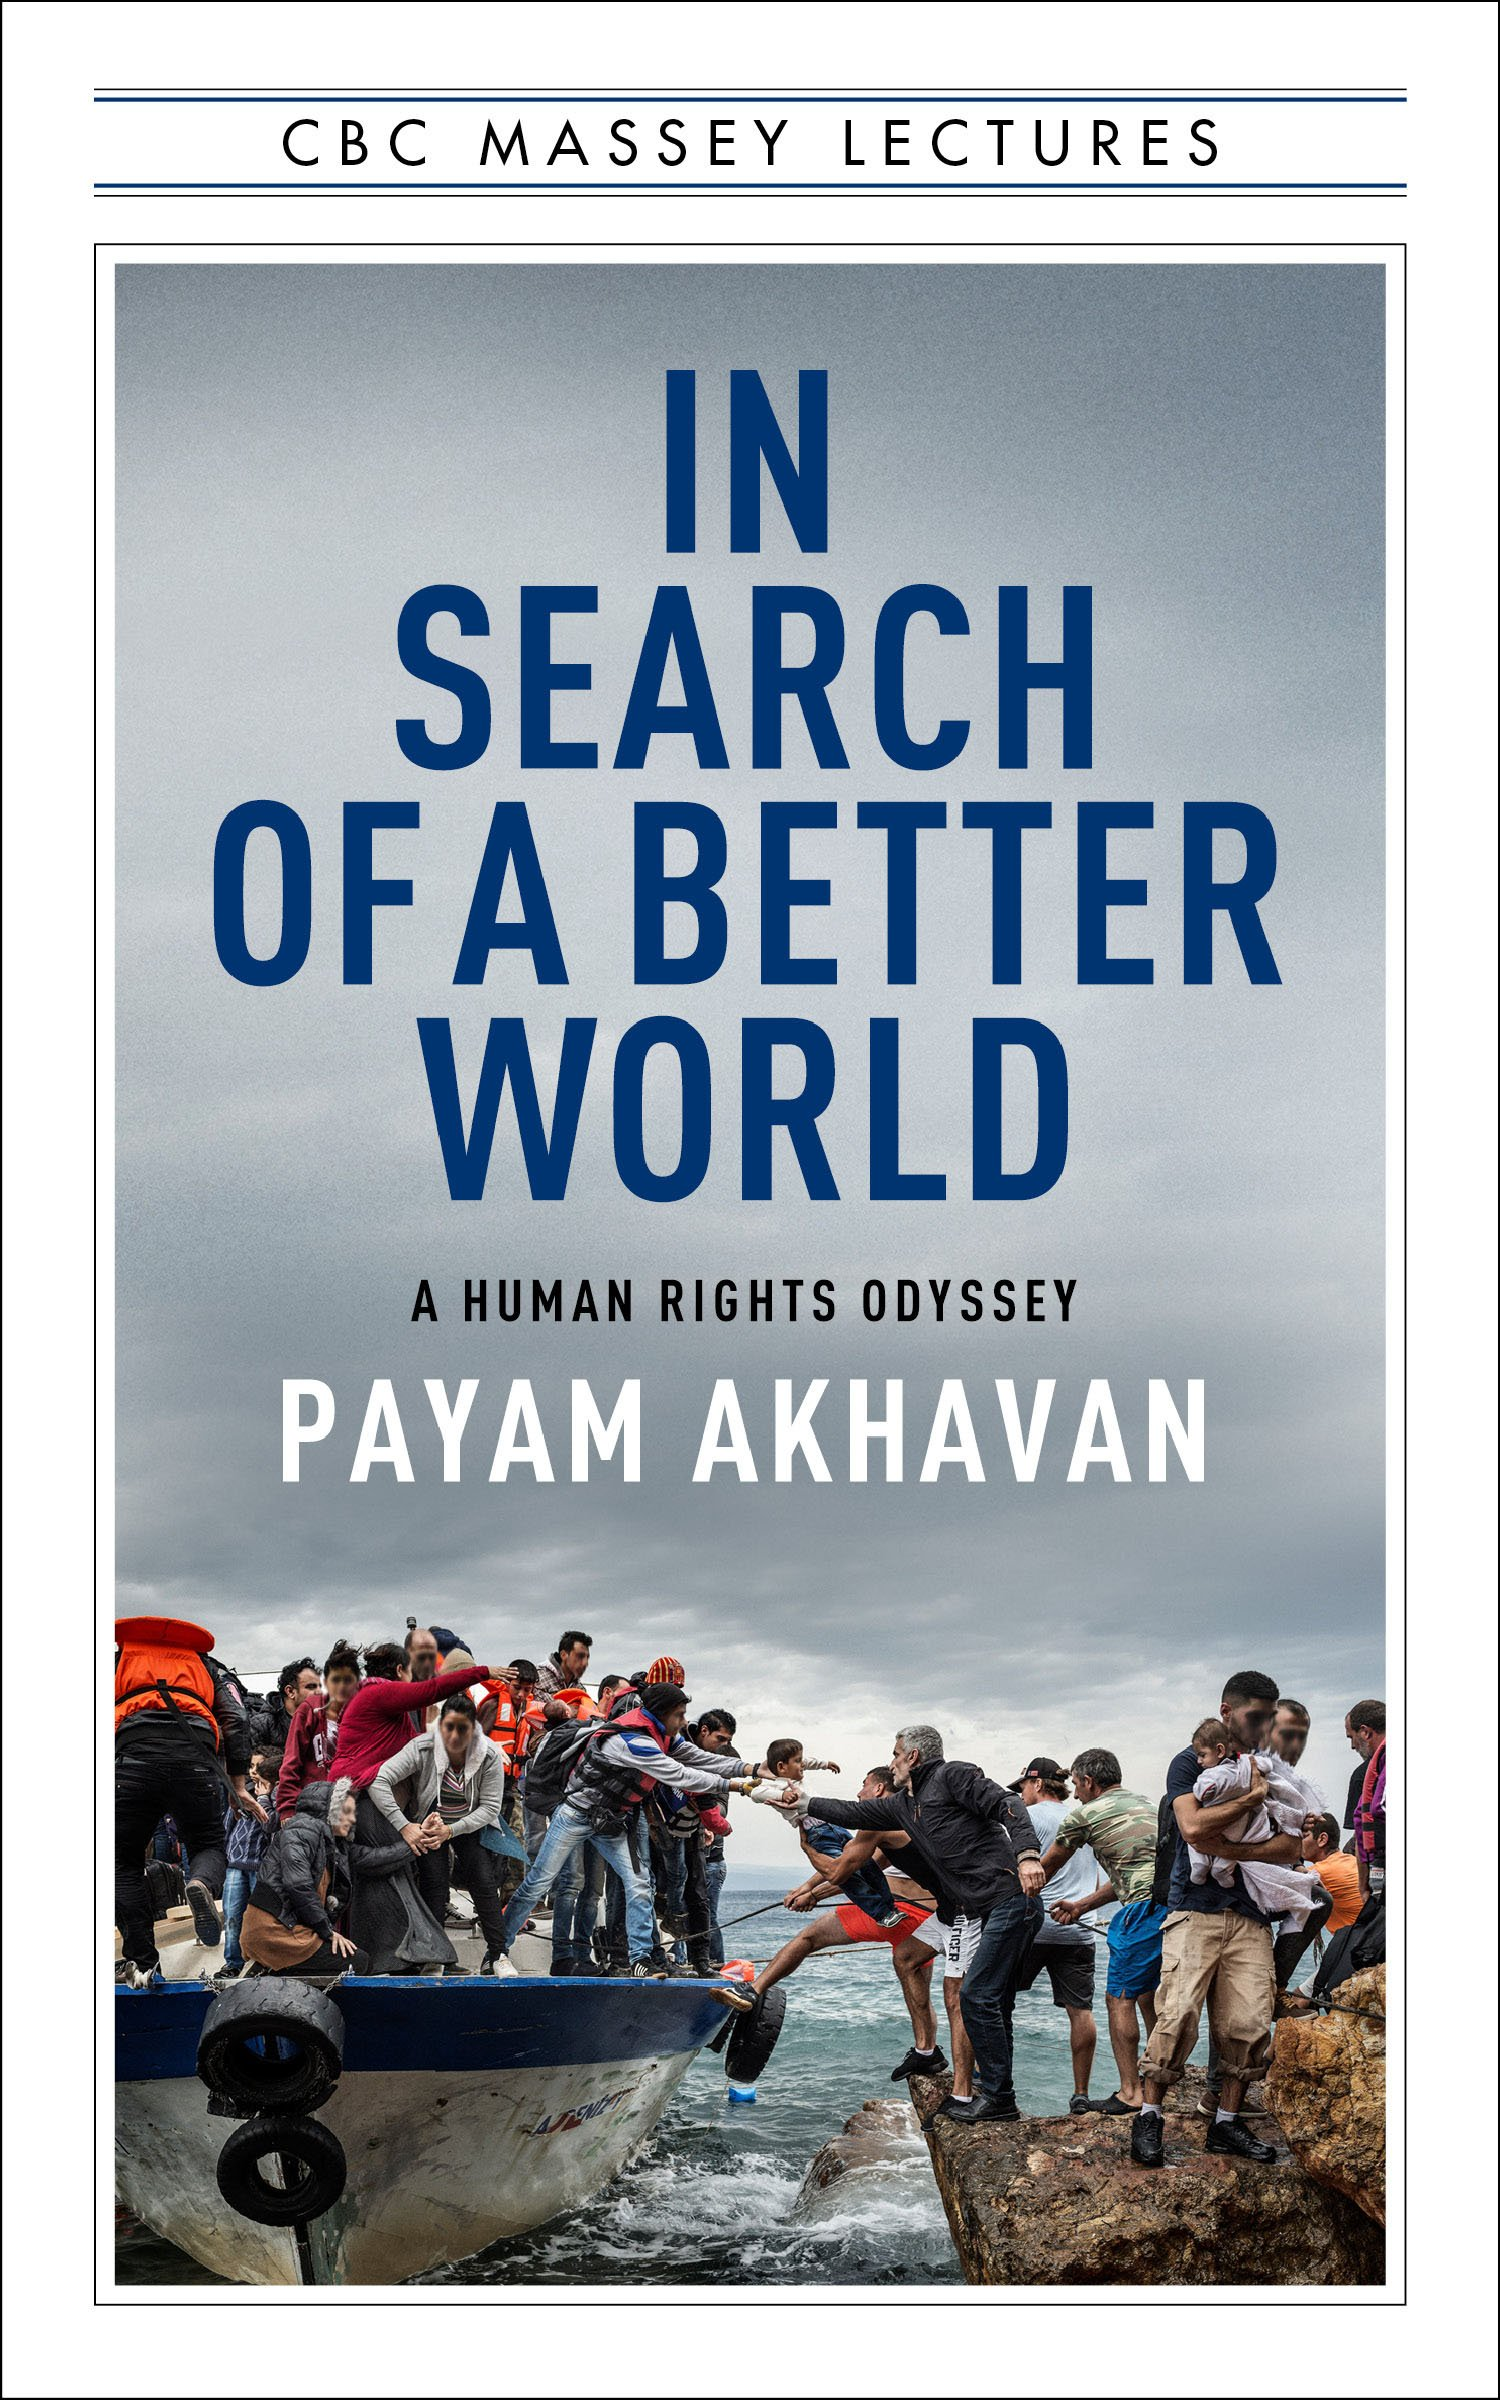 in search of a better world-1